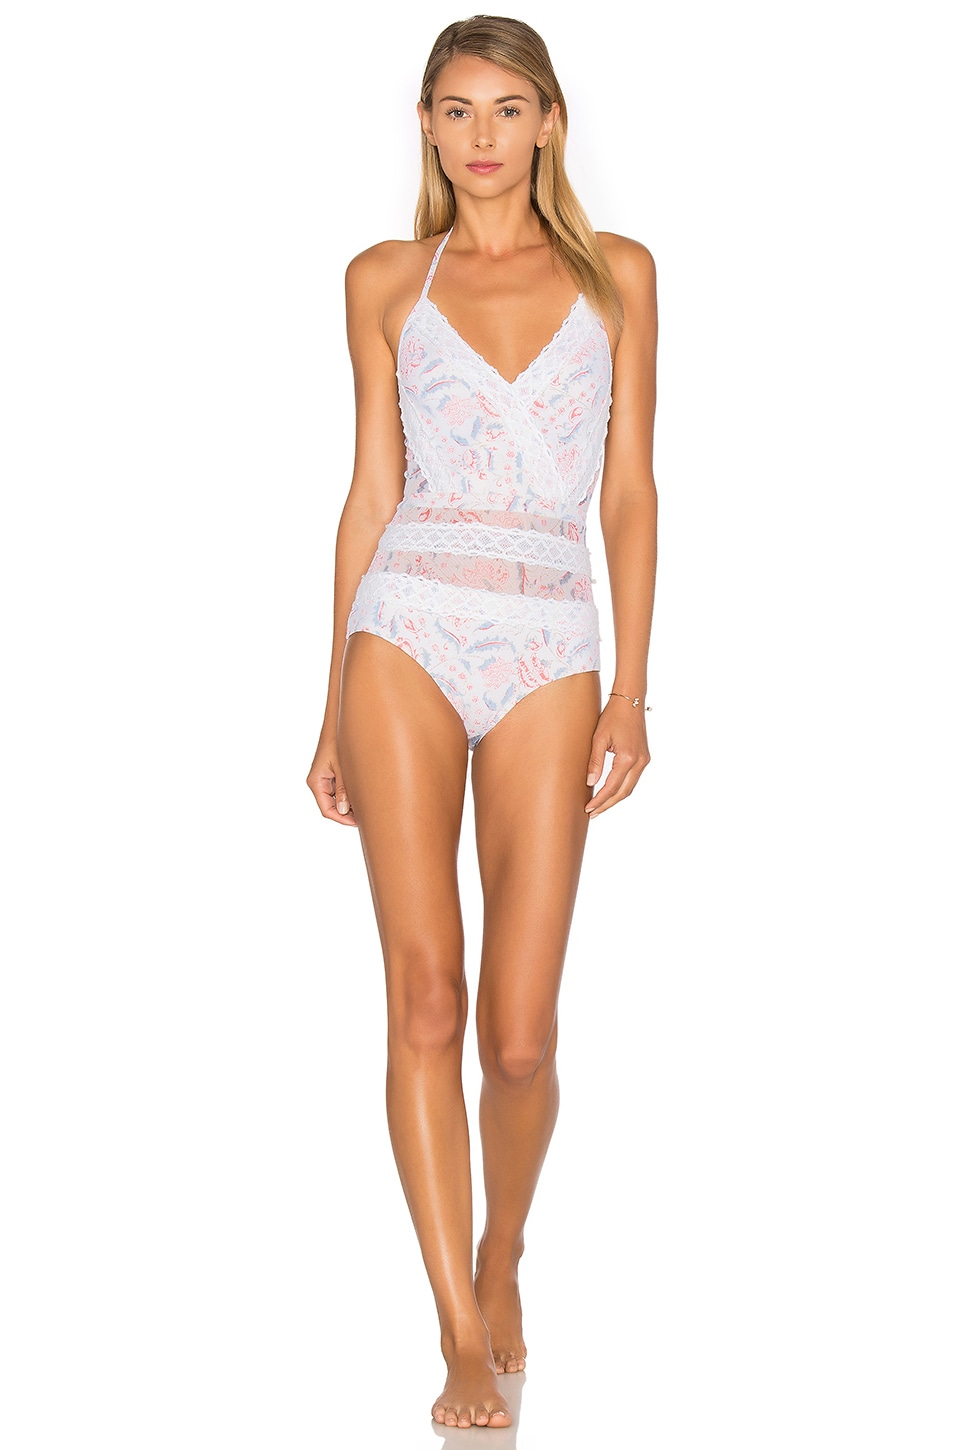 b2ed3da23 Zimmermann Zephyr Lace One Piece Swimsuit in Floral